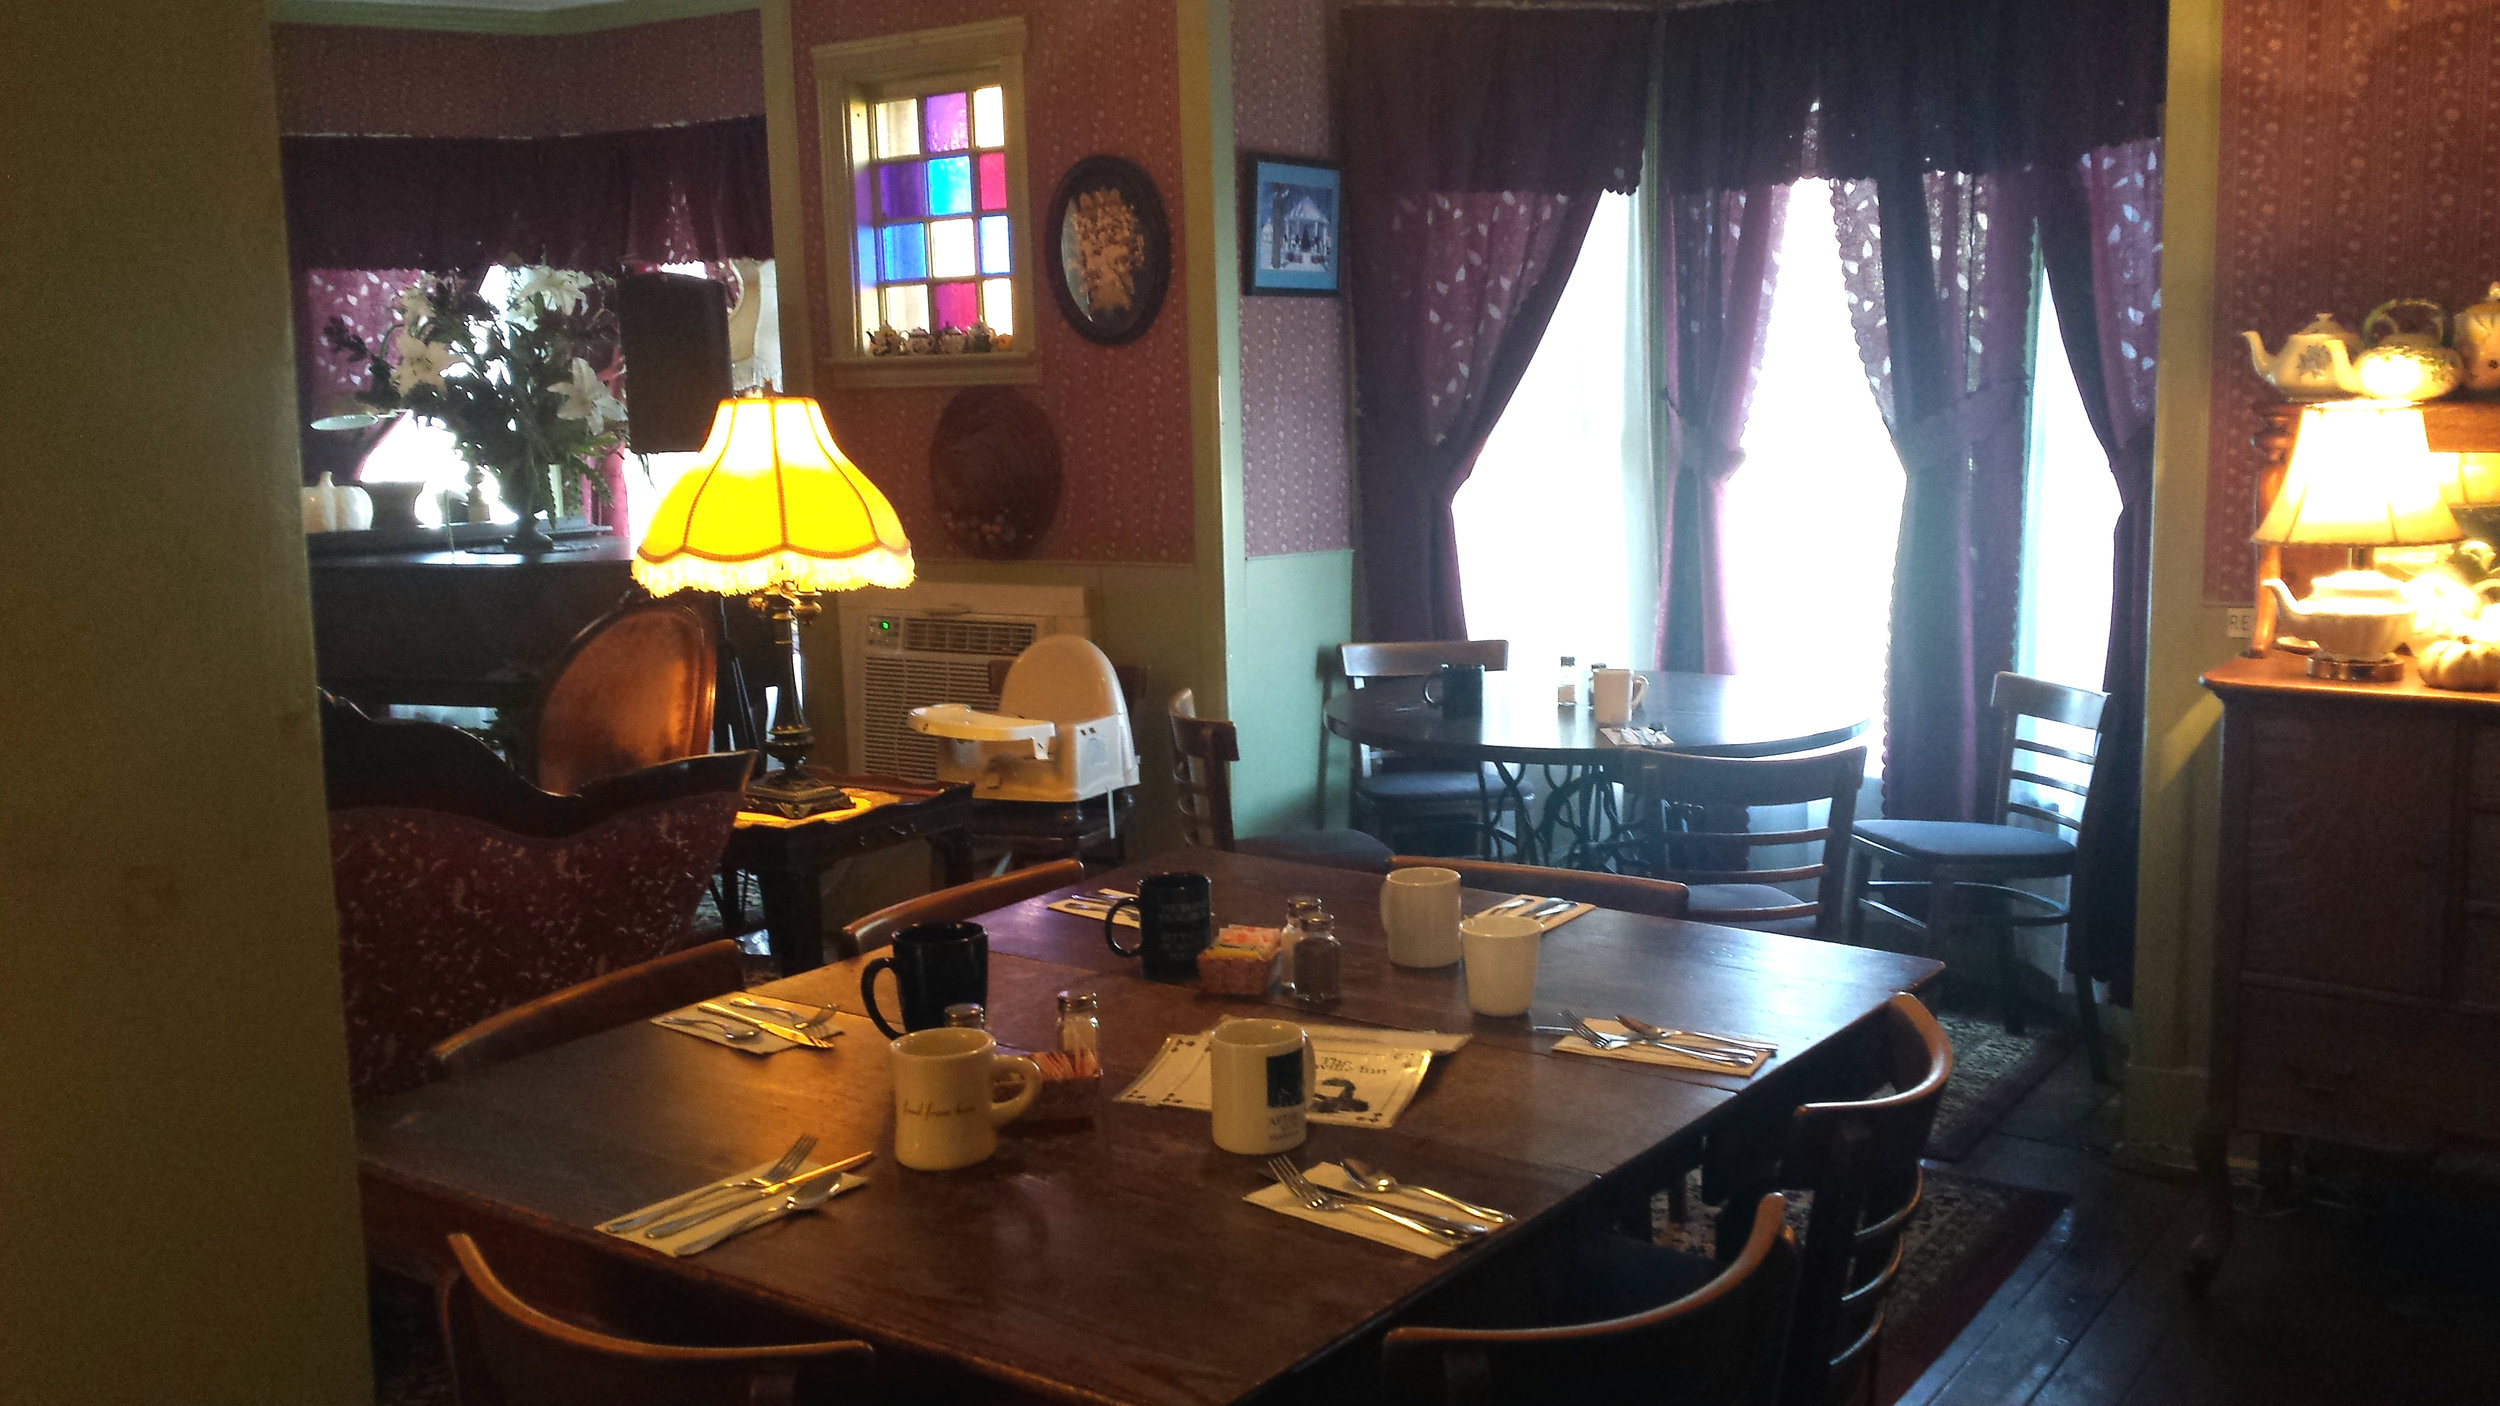 Cozy dining room at the Danville Inn